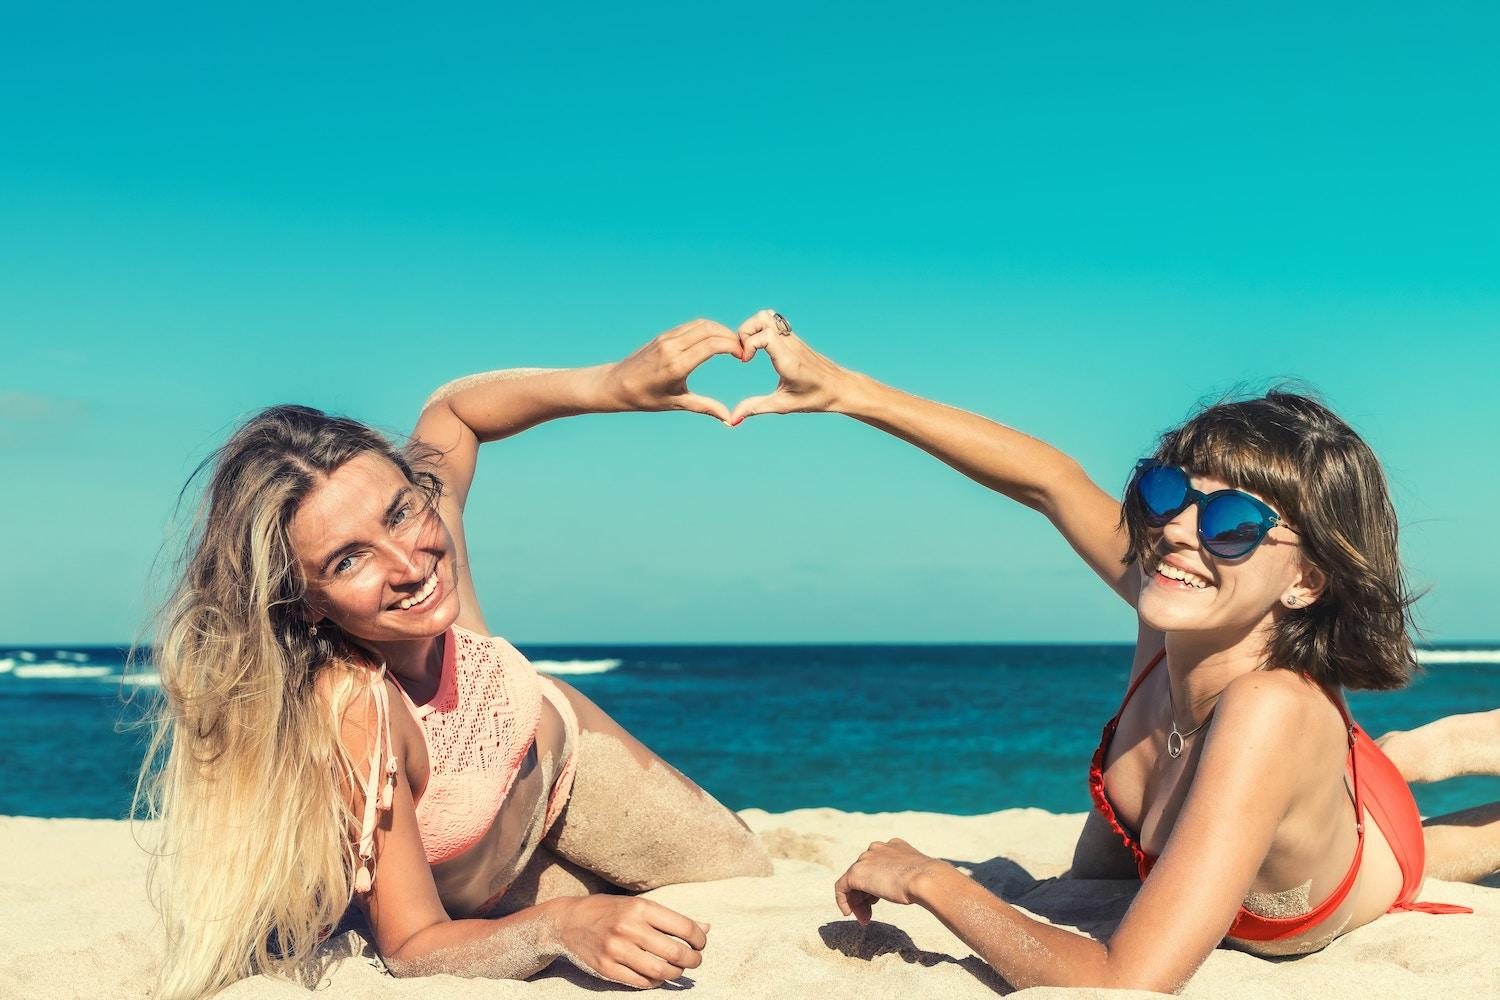 your trip to Florida: 2 women sun bathing and smiling on beach